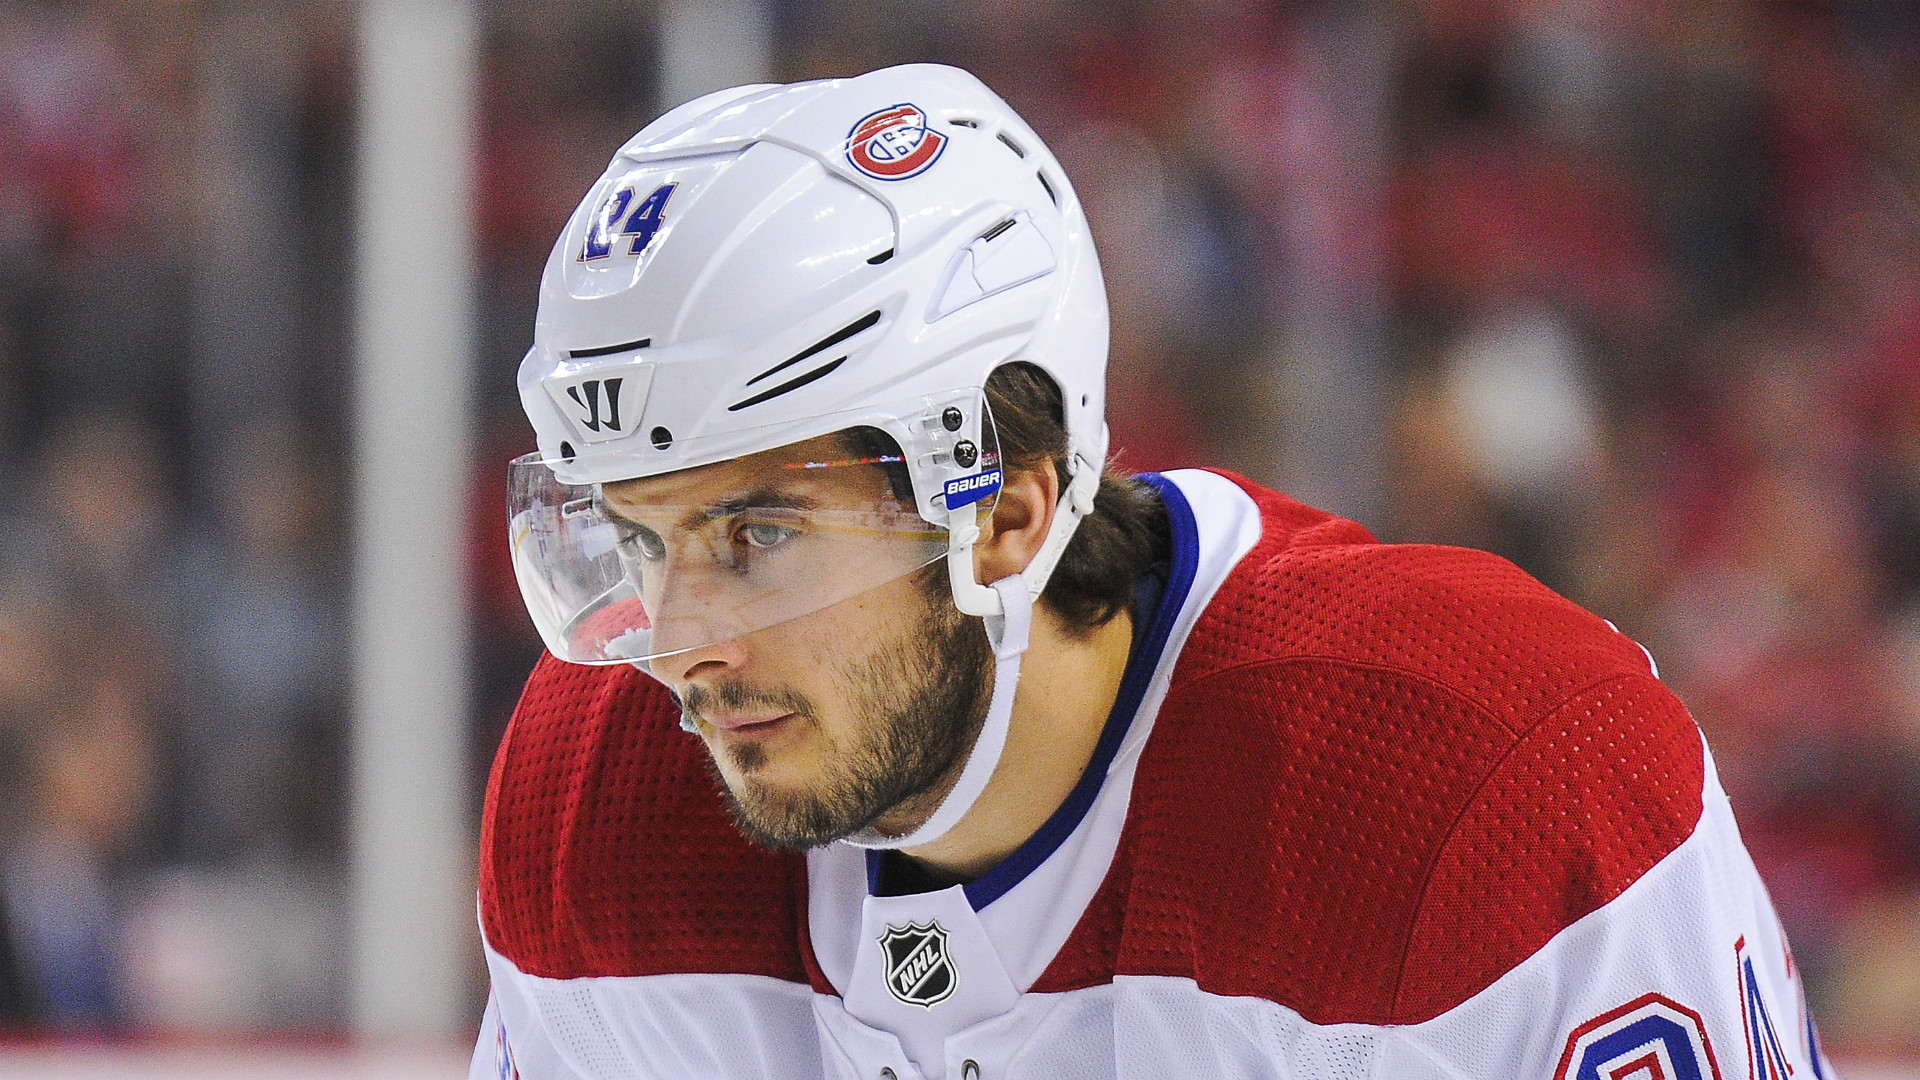 Canadiens' Danault to remain hospitalized after shot to head